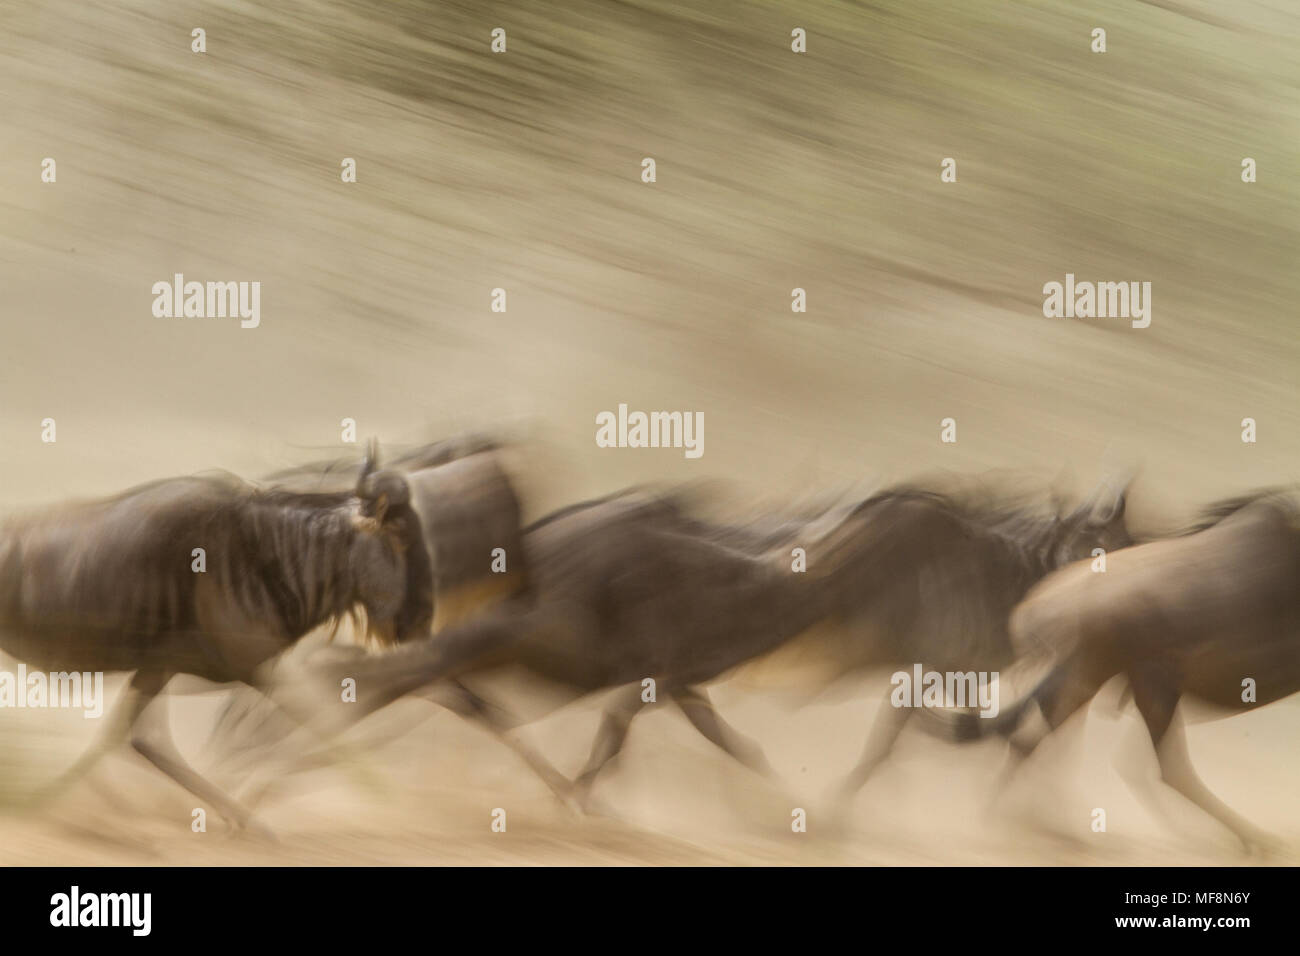 Wildebeest on the run during migration, Serengeti National Park, Tanzania; population of 1.5 million may be decimated by proposed highway and railroad - Stock Image